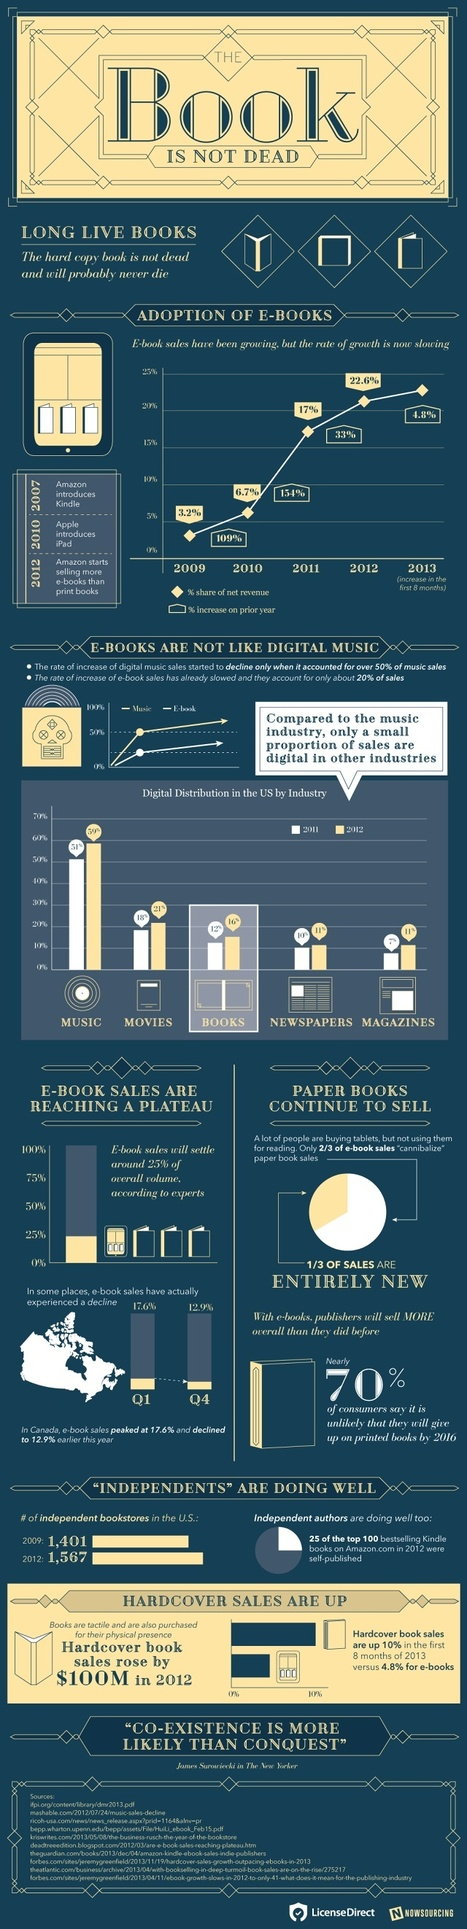 Print Books Are Far From Dead #infographic | Information Management: All things bright and beautiful | Scoop.it